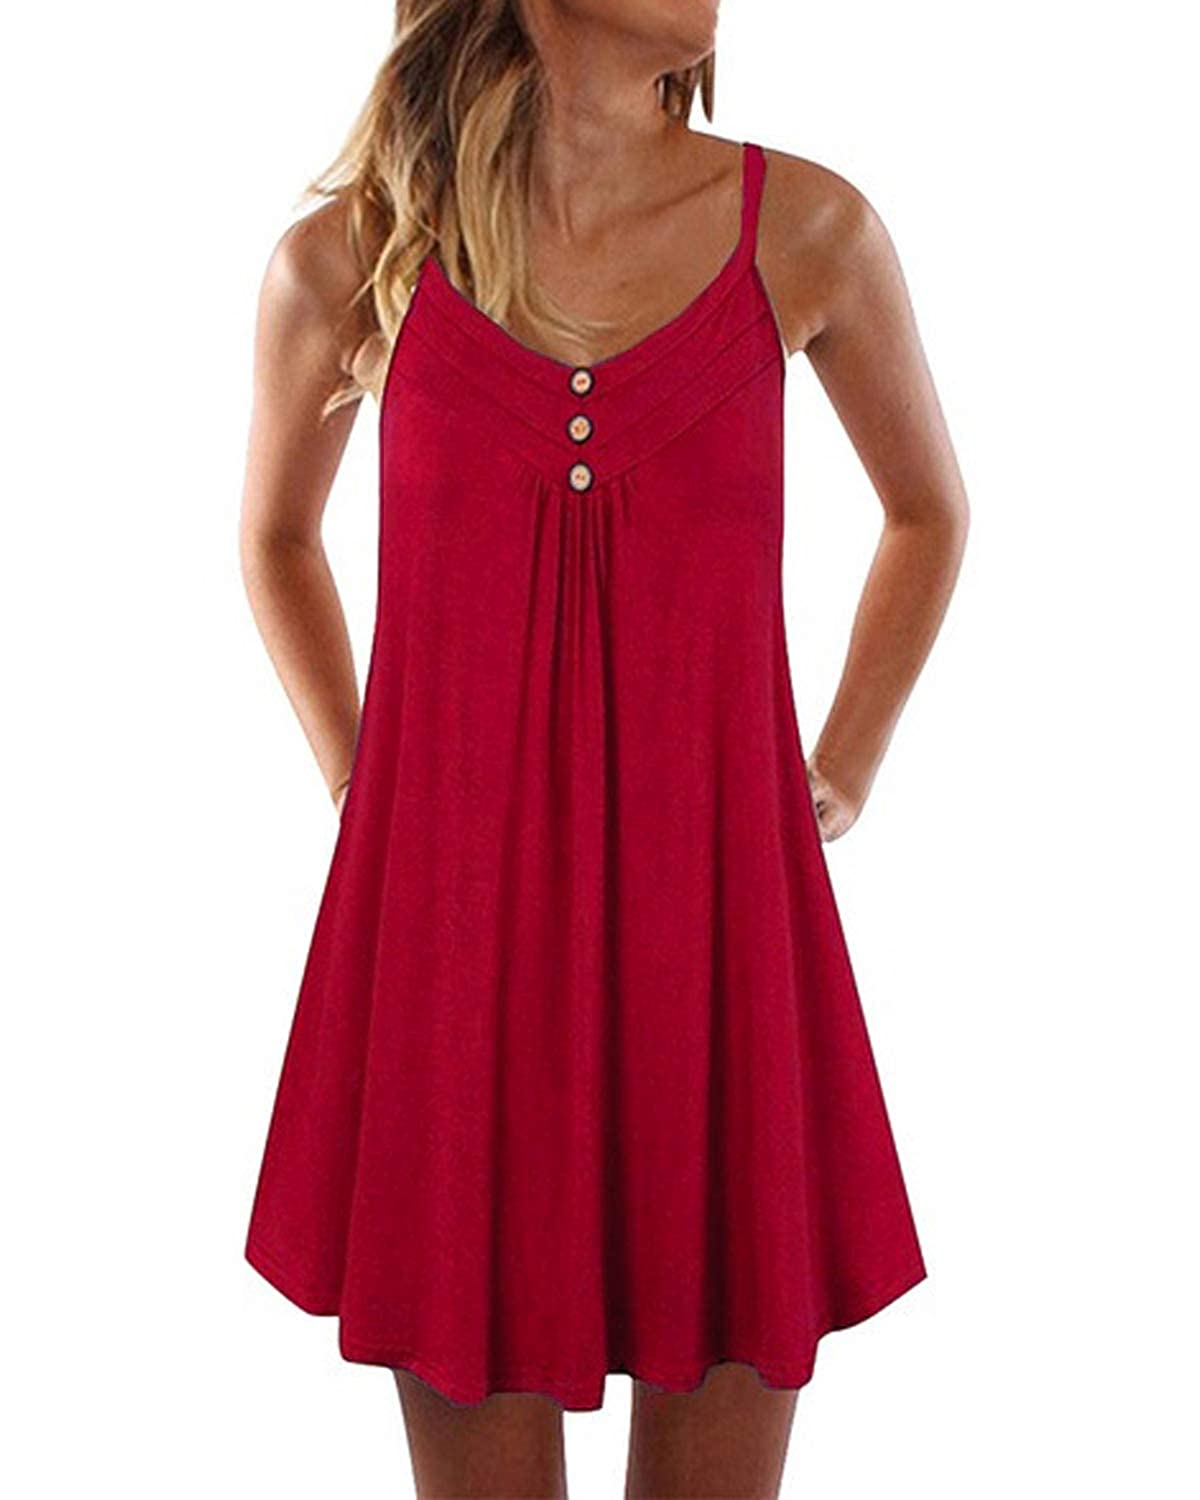 VooSaa Womens Sleeveless Strap Dresses Casual A Line Mini Dress